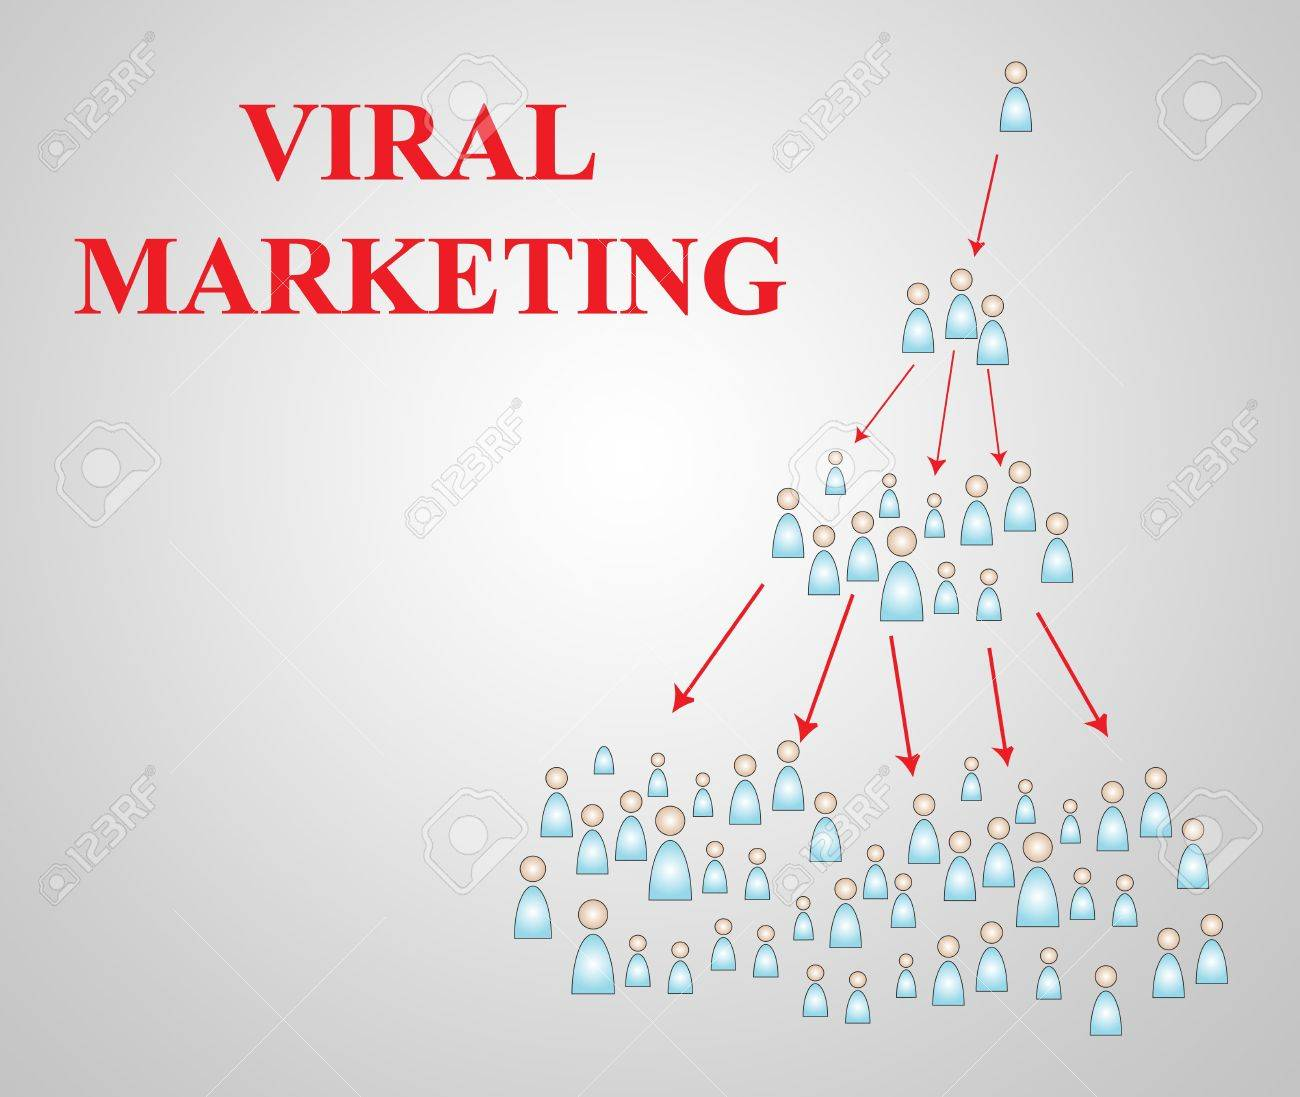 Viral Marketing demonstration graph chart of how powerful web 2.0 can spread through word of mouth advertisng. Stock Photo - 6814740